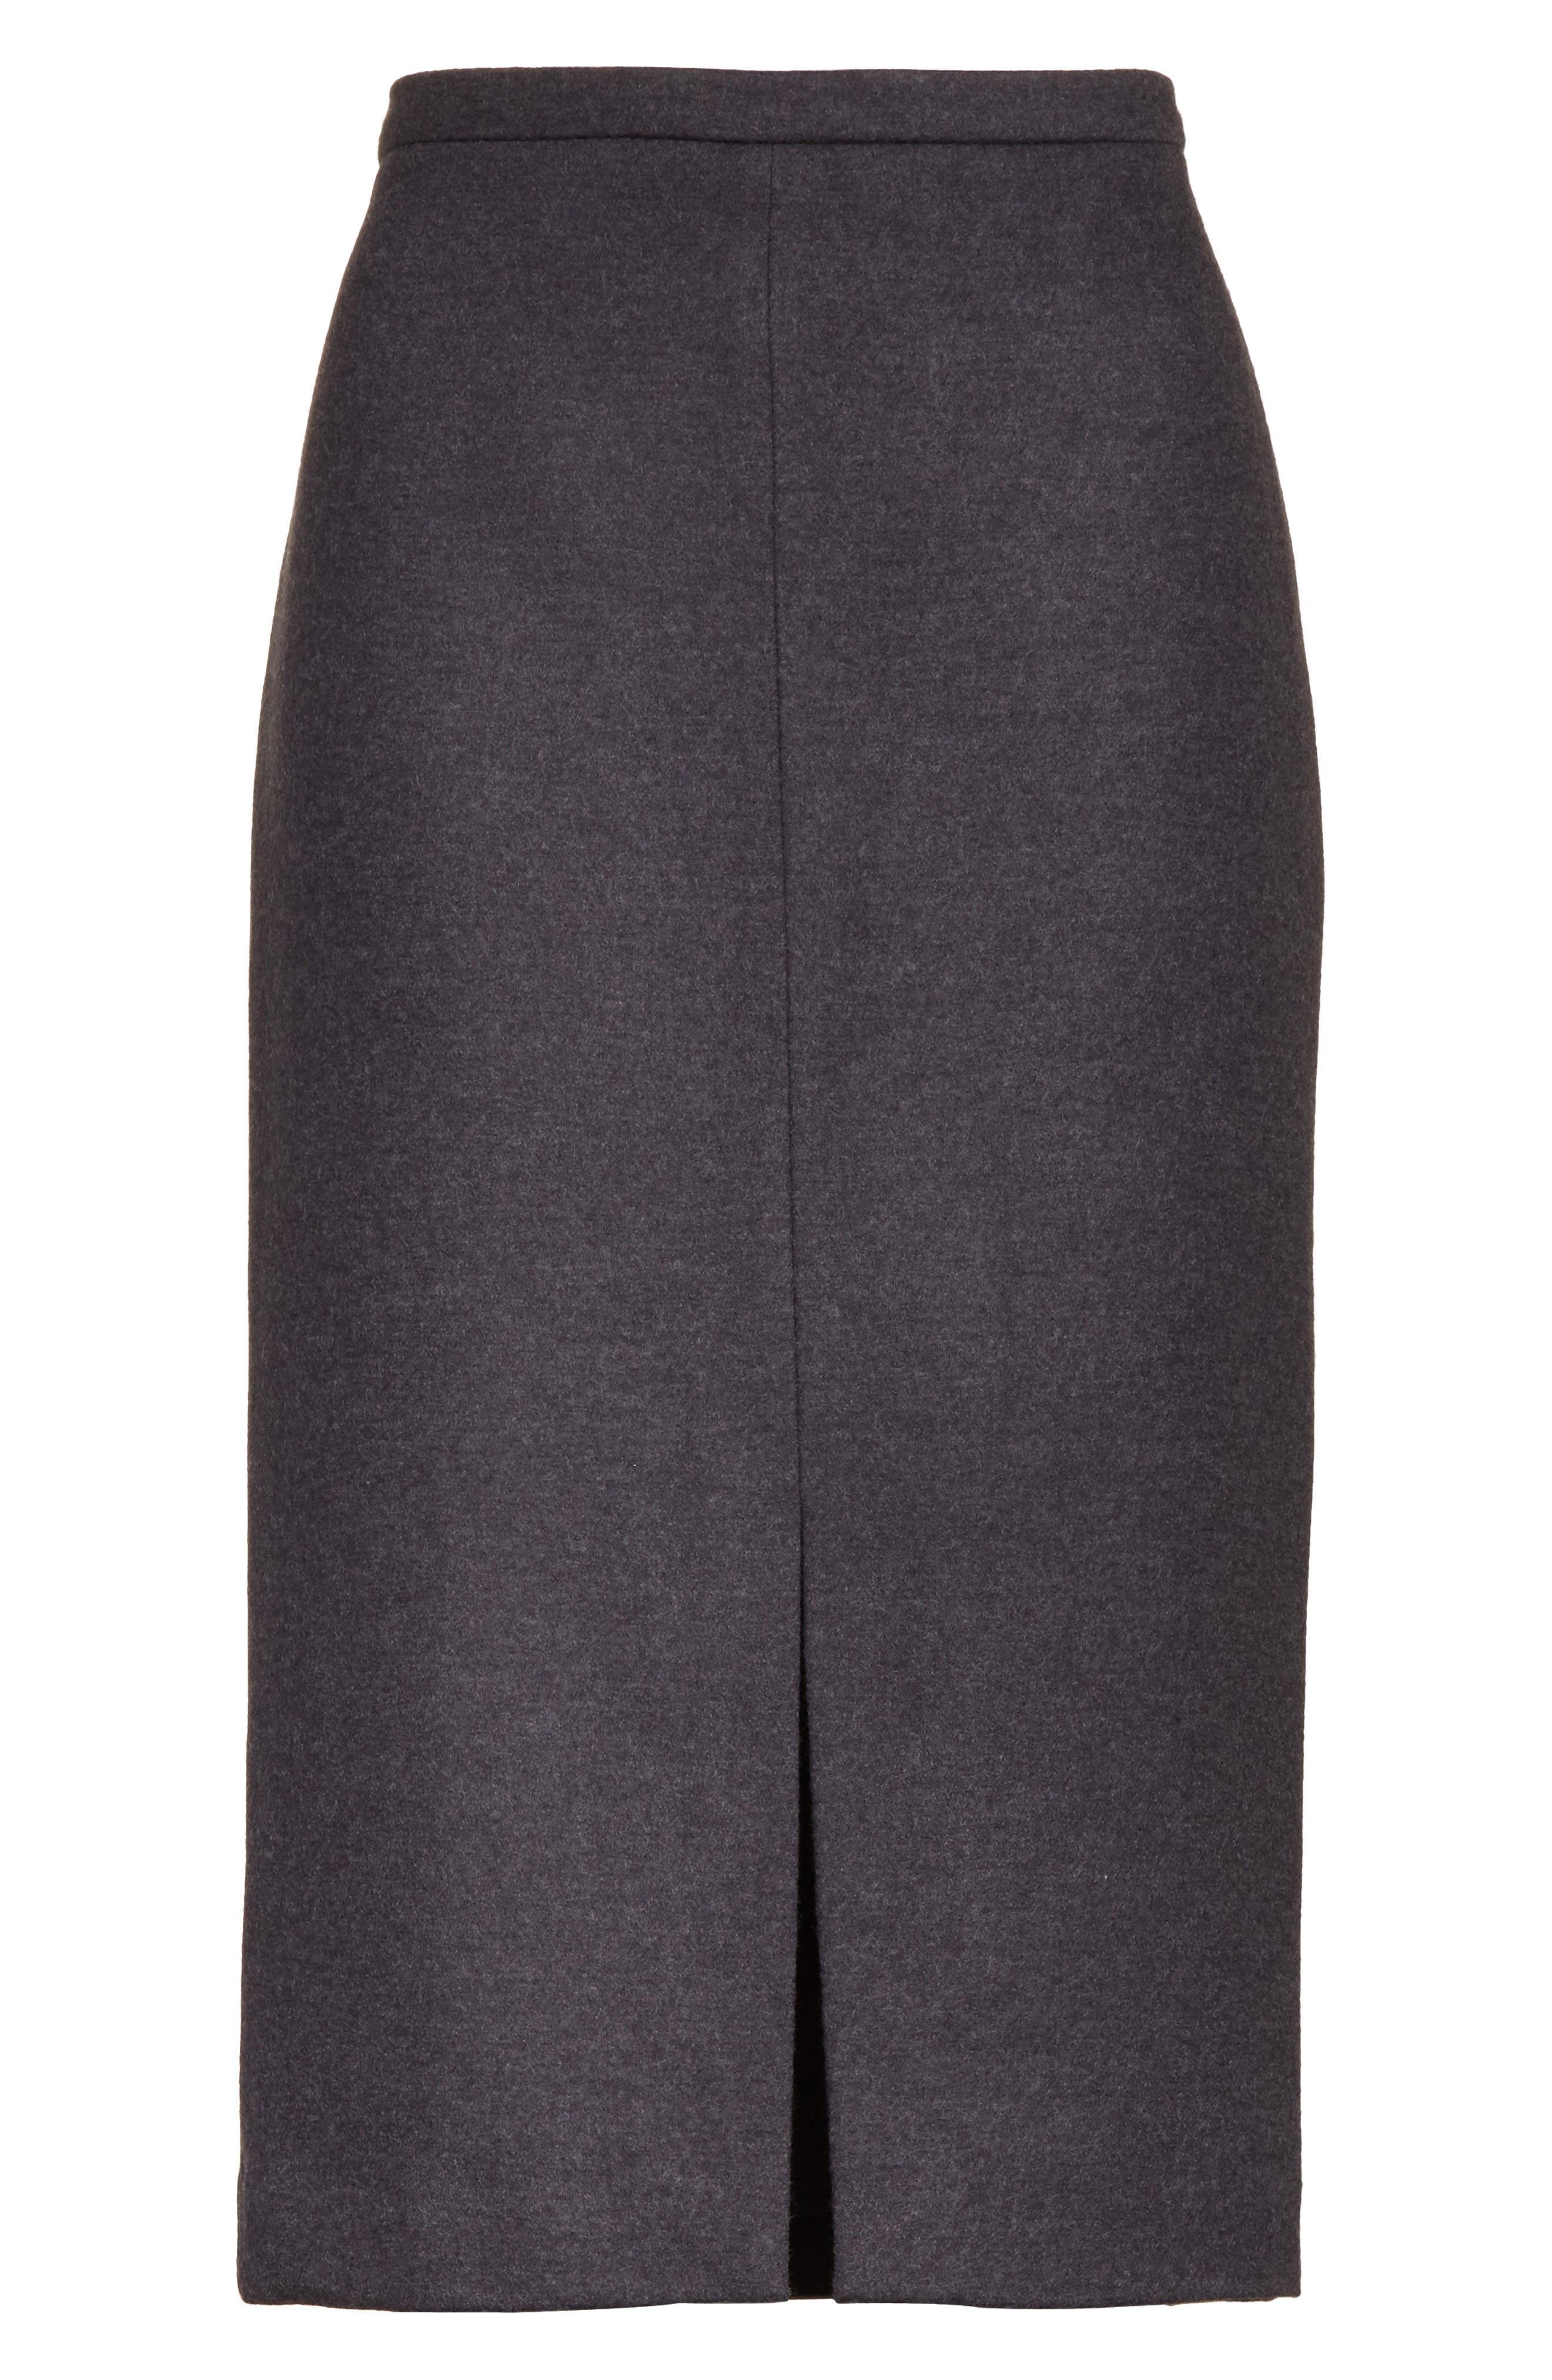 Nanna Leather Trim Wool Pencil Skirt,                             Alternate thumbnail 6, color,                             Dark Grey